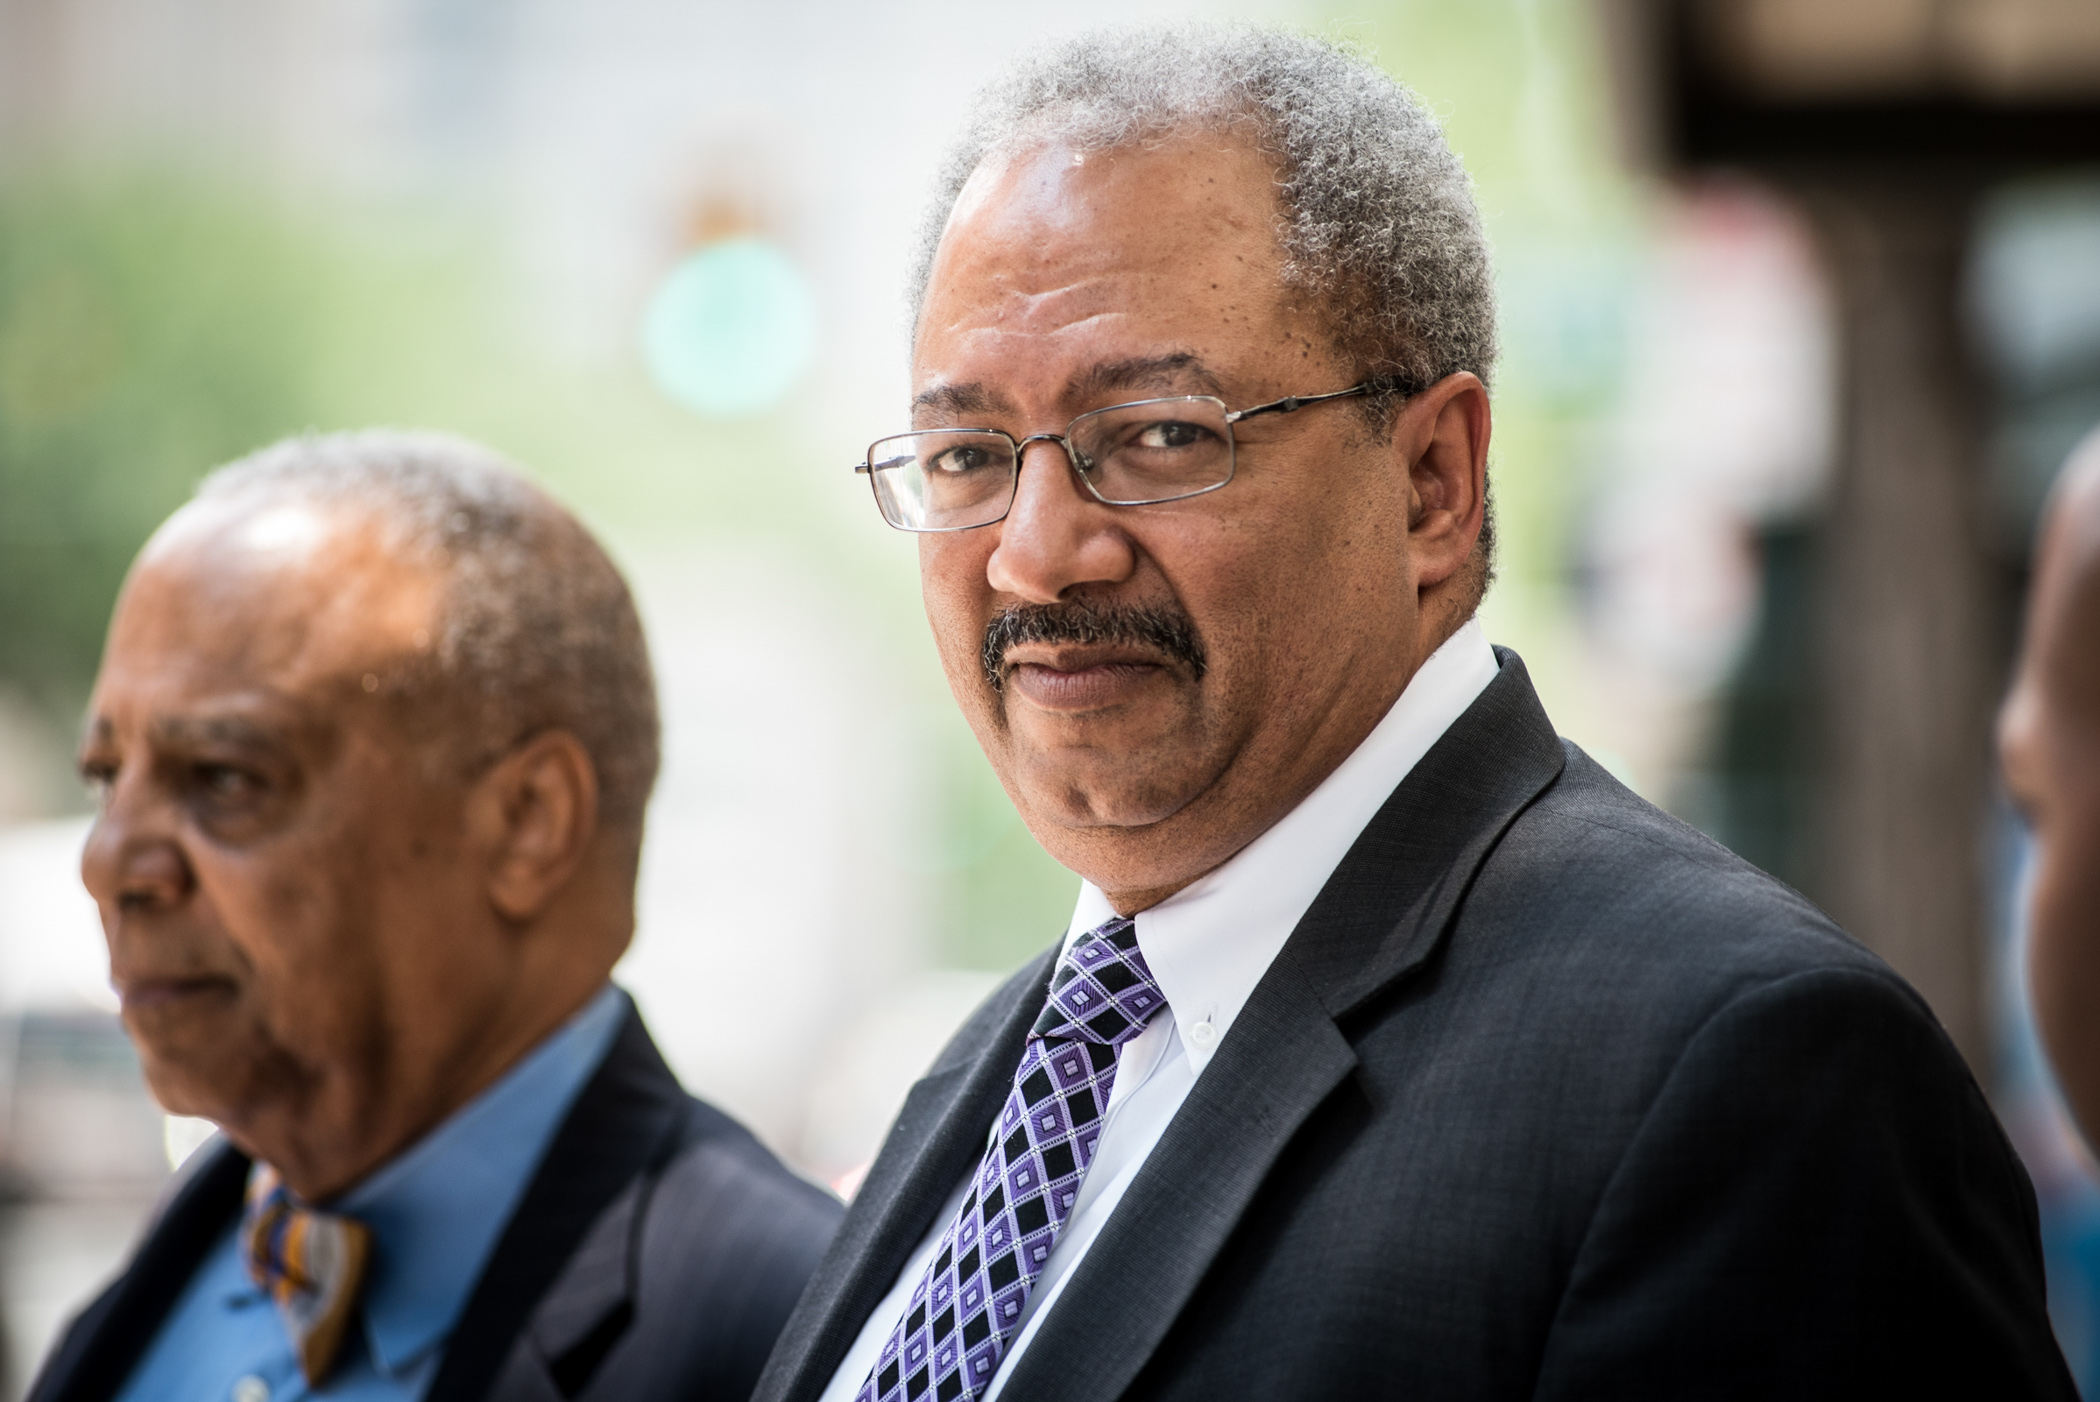 U.S. Rep. Chaka Fattah,D-PA,leaves the federal courthouse in Philadelphia after being convicted Tuesday, June 21, 2016.Fattah, a veteran Pennsylvania congressman, was convicted Tuesday in a racketeering case that largely centered on various efforts to repay an illegal $1 million campaign loan related to his unsuccessful 2007 mayoral bid.(Michael Ares / Philadelphia Inquirer)